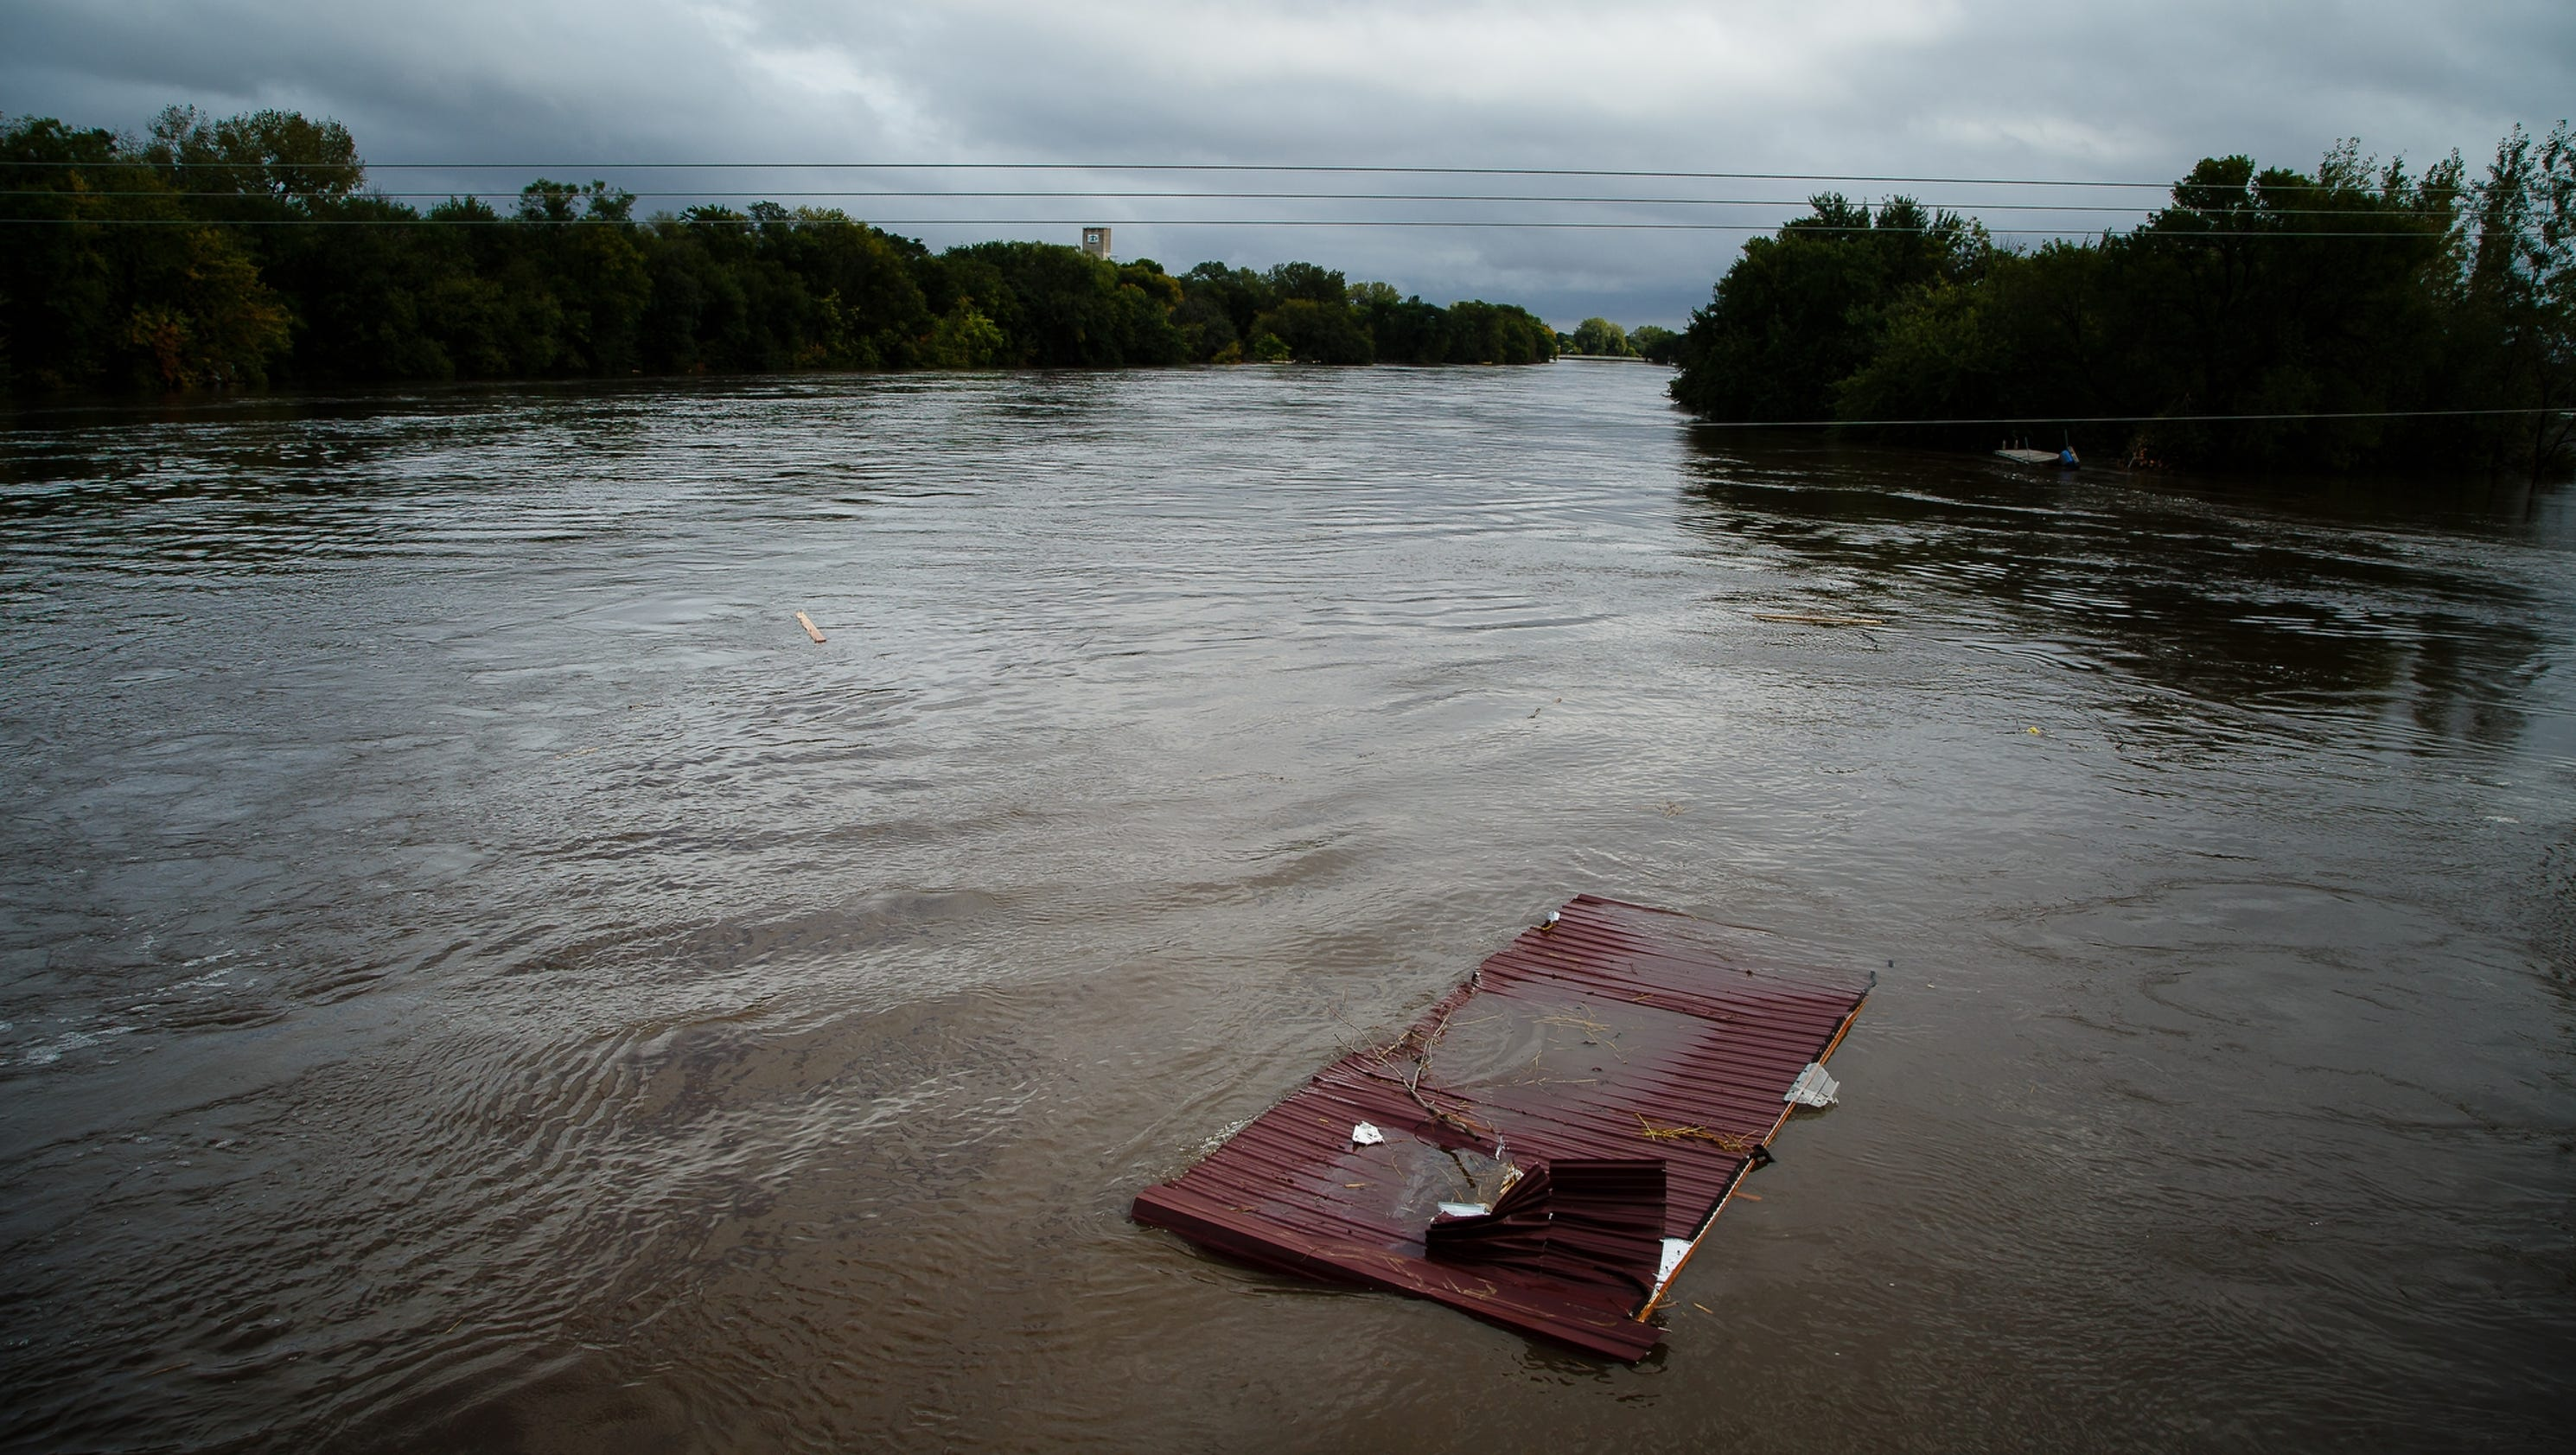 Flooding turns deadly in Wisconsin